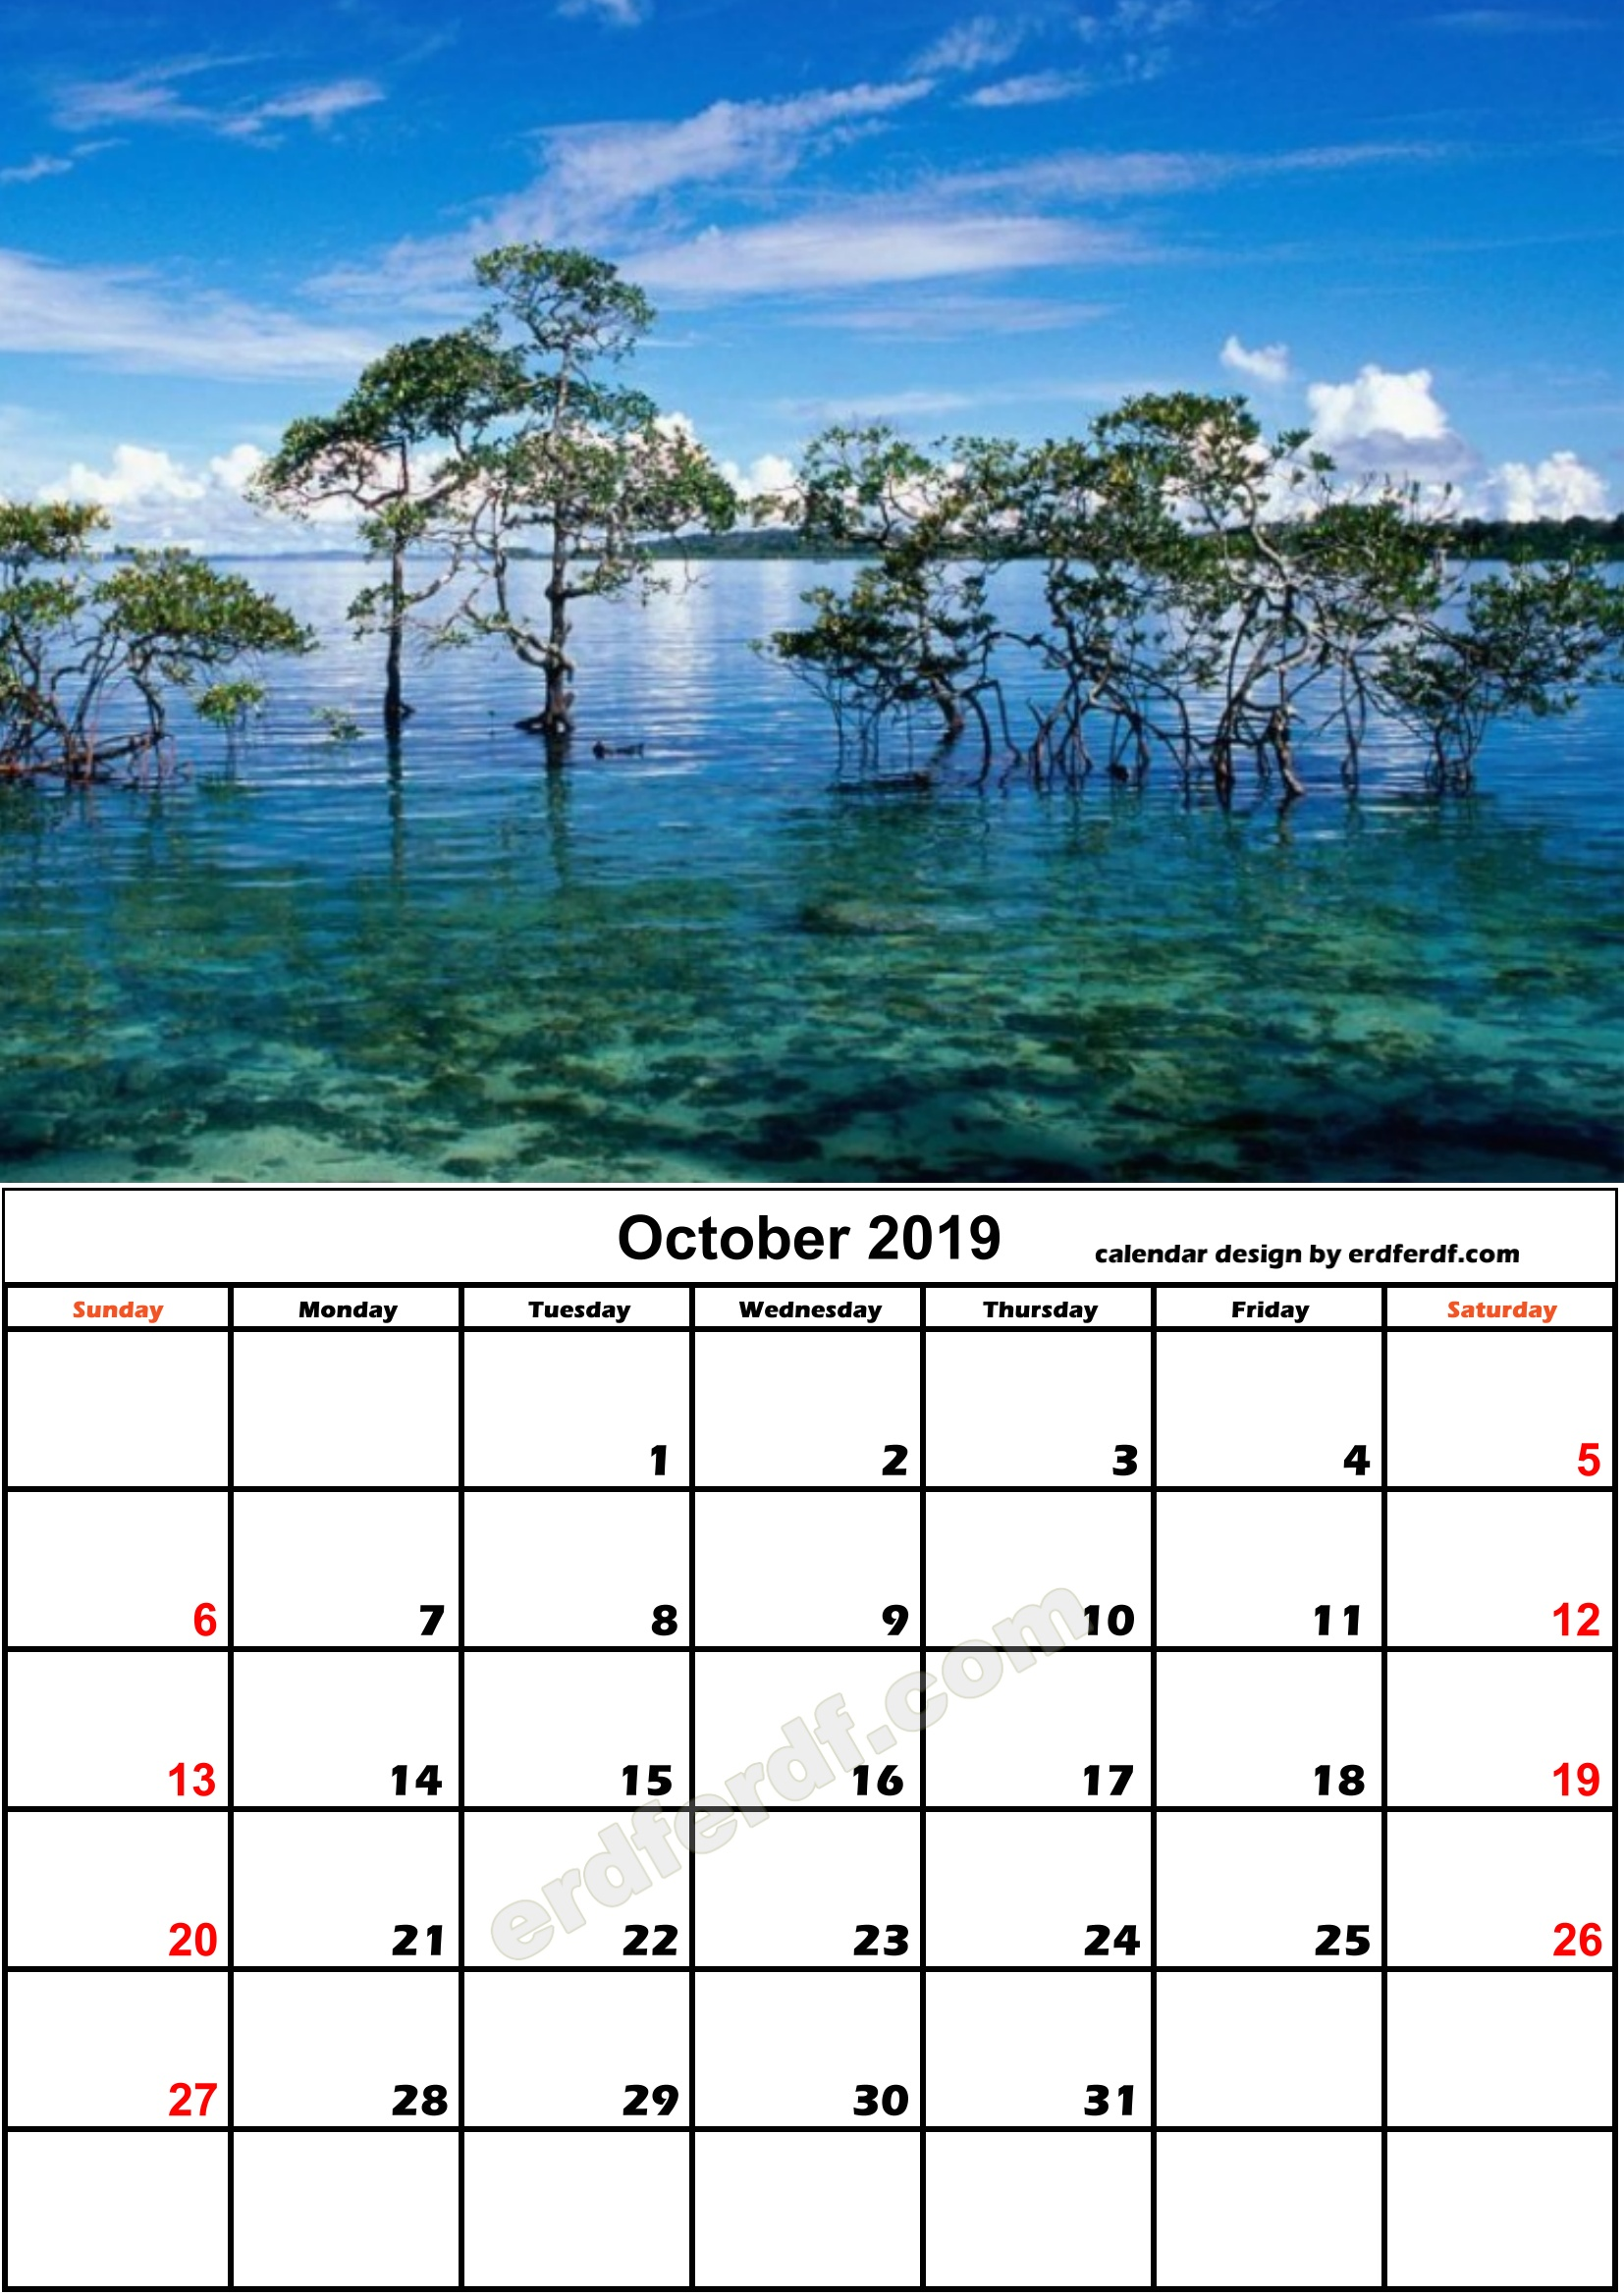 10 October Beach Nature Calendar Monthly 2019 Free Download